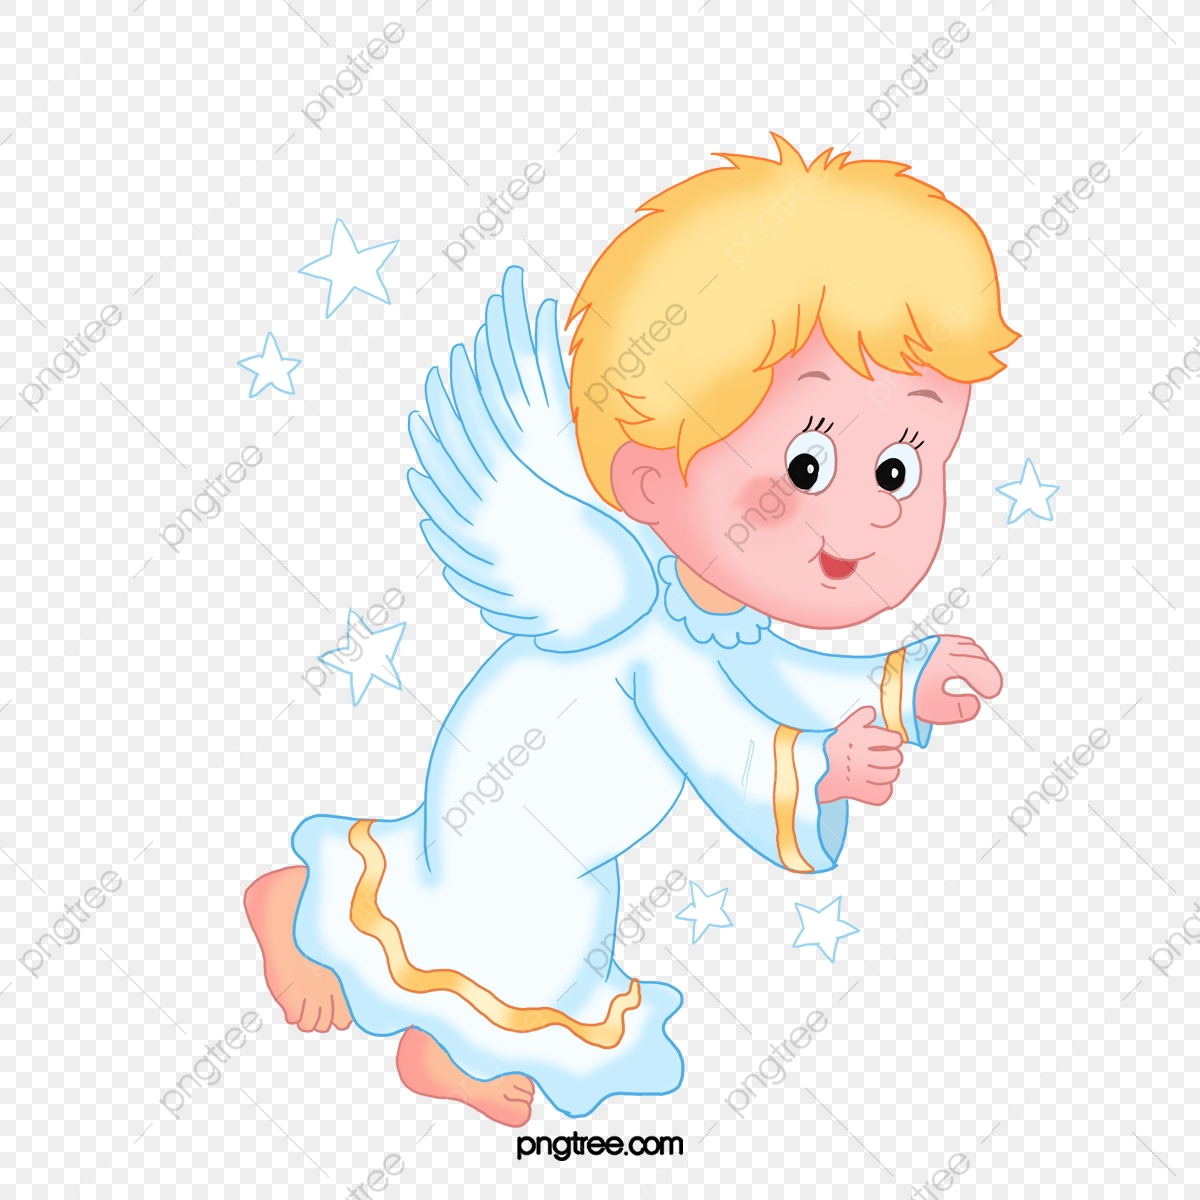 hight resolution of commercial use resource upgrade to premium plan and get license authorization upgradenow angel baby angel clipart